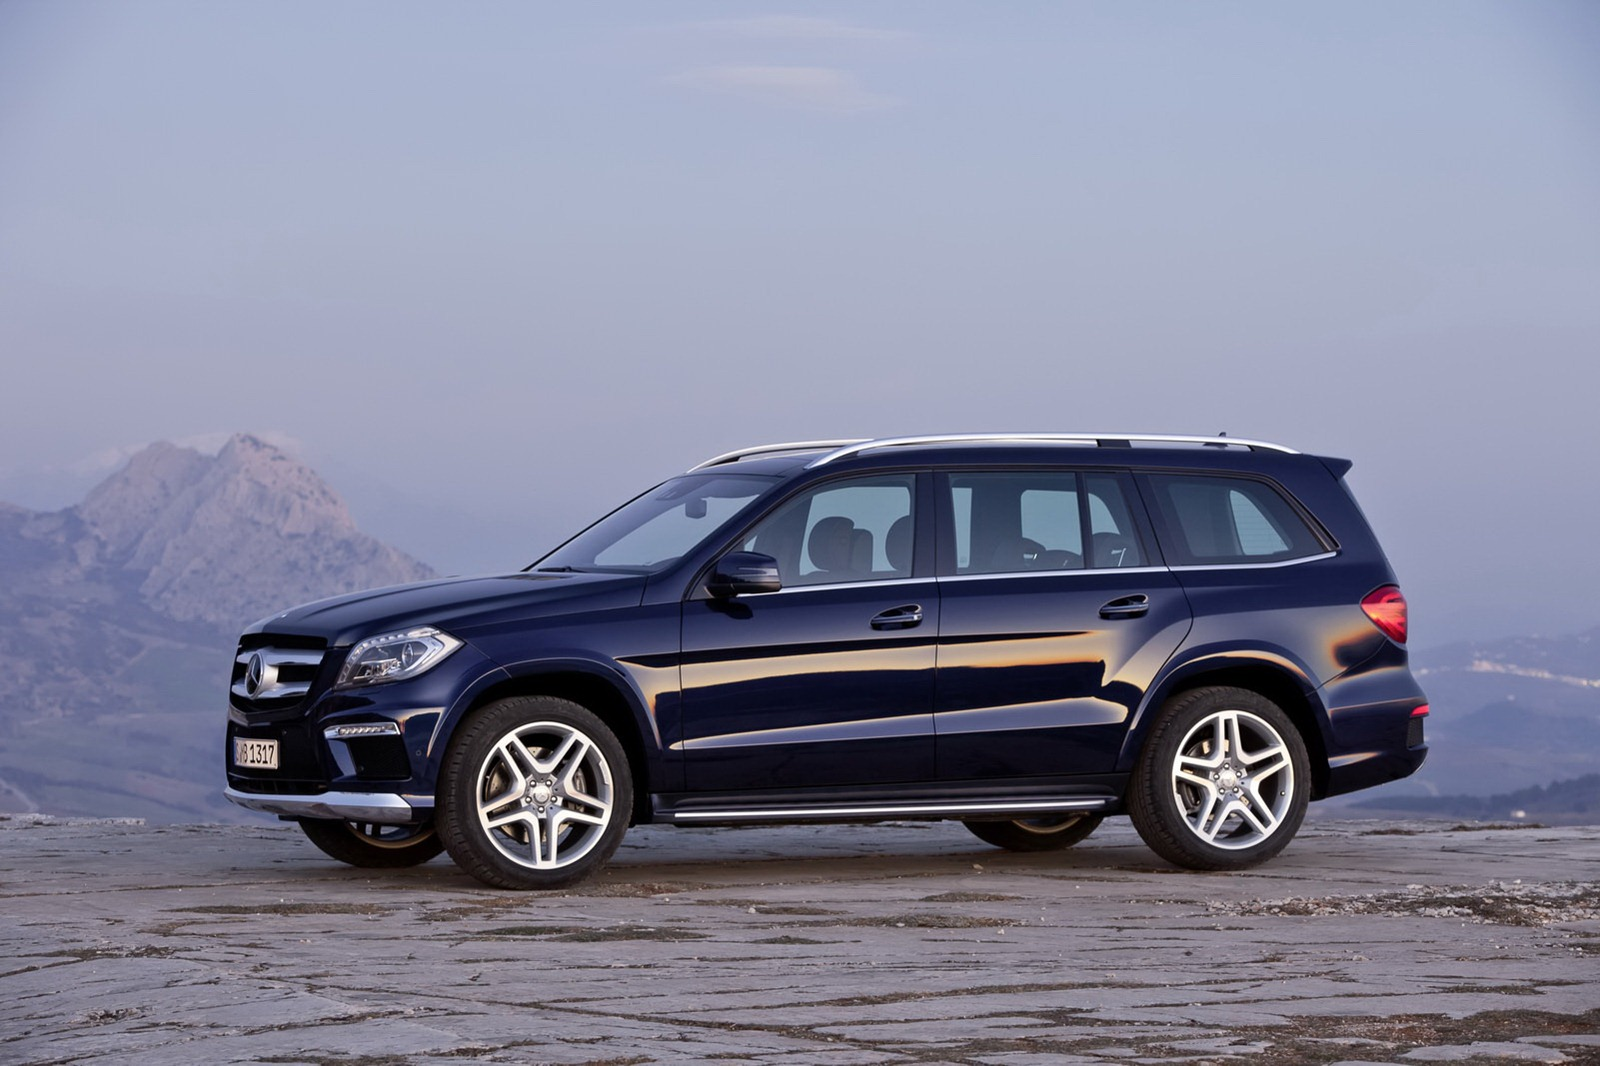 2013 mercedes benz gl class luxury suv unveiled for Expensive mercedes benz suv